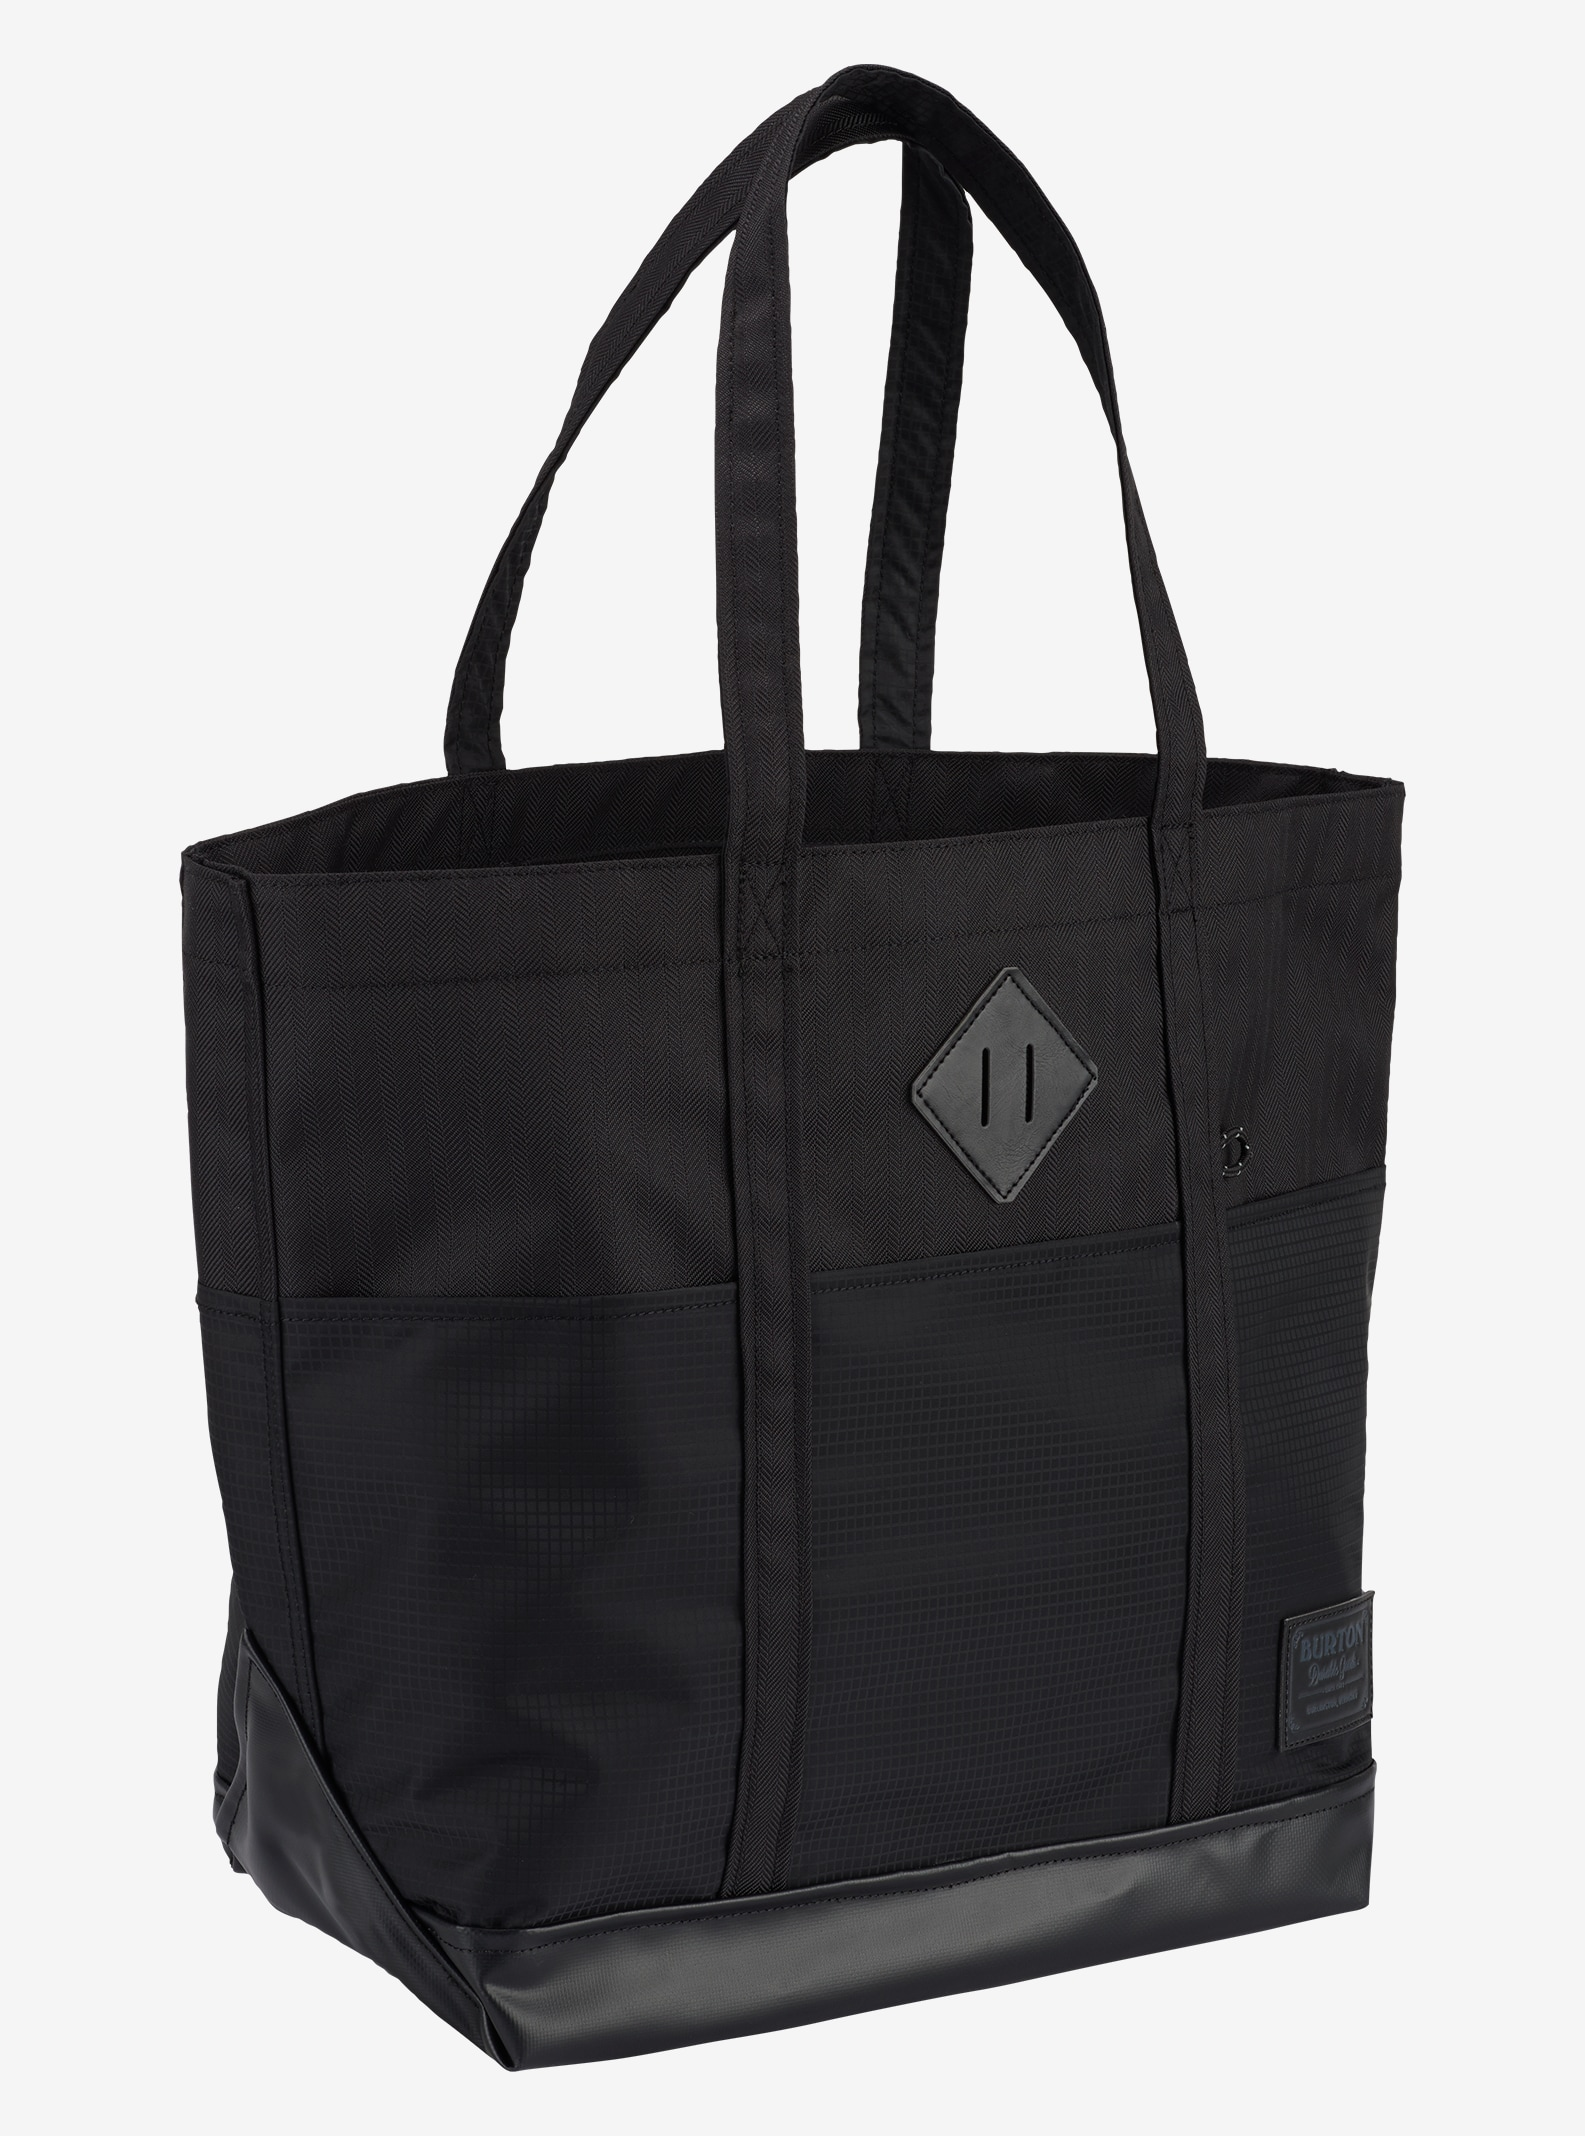 Burton Crate Tote - Medium shown in True Black Heather Twill